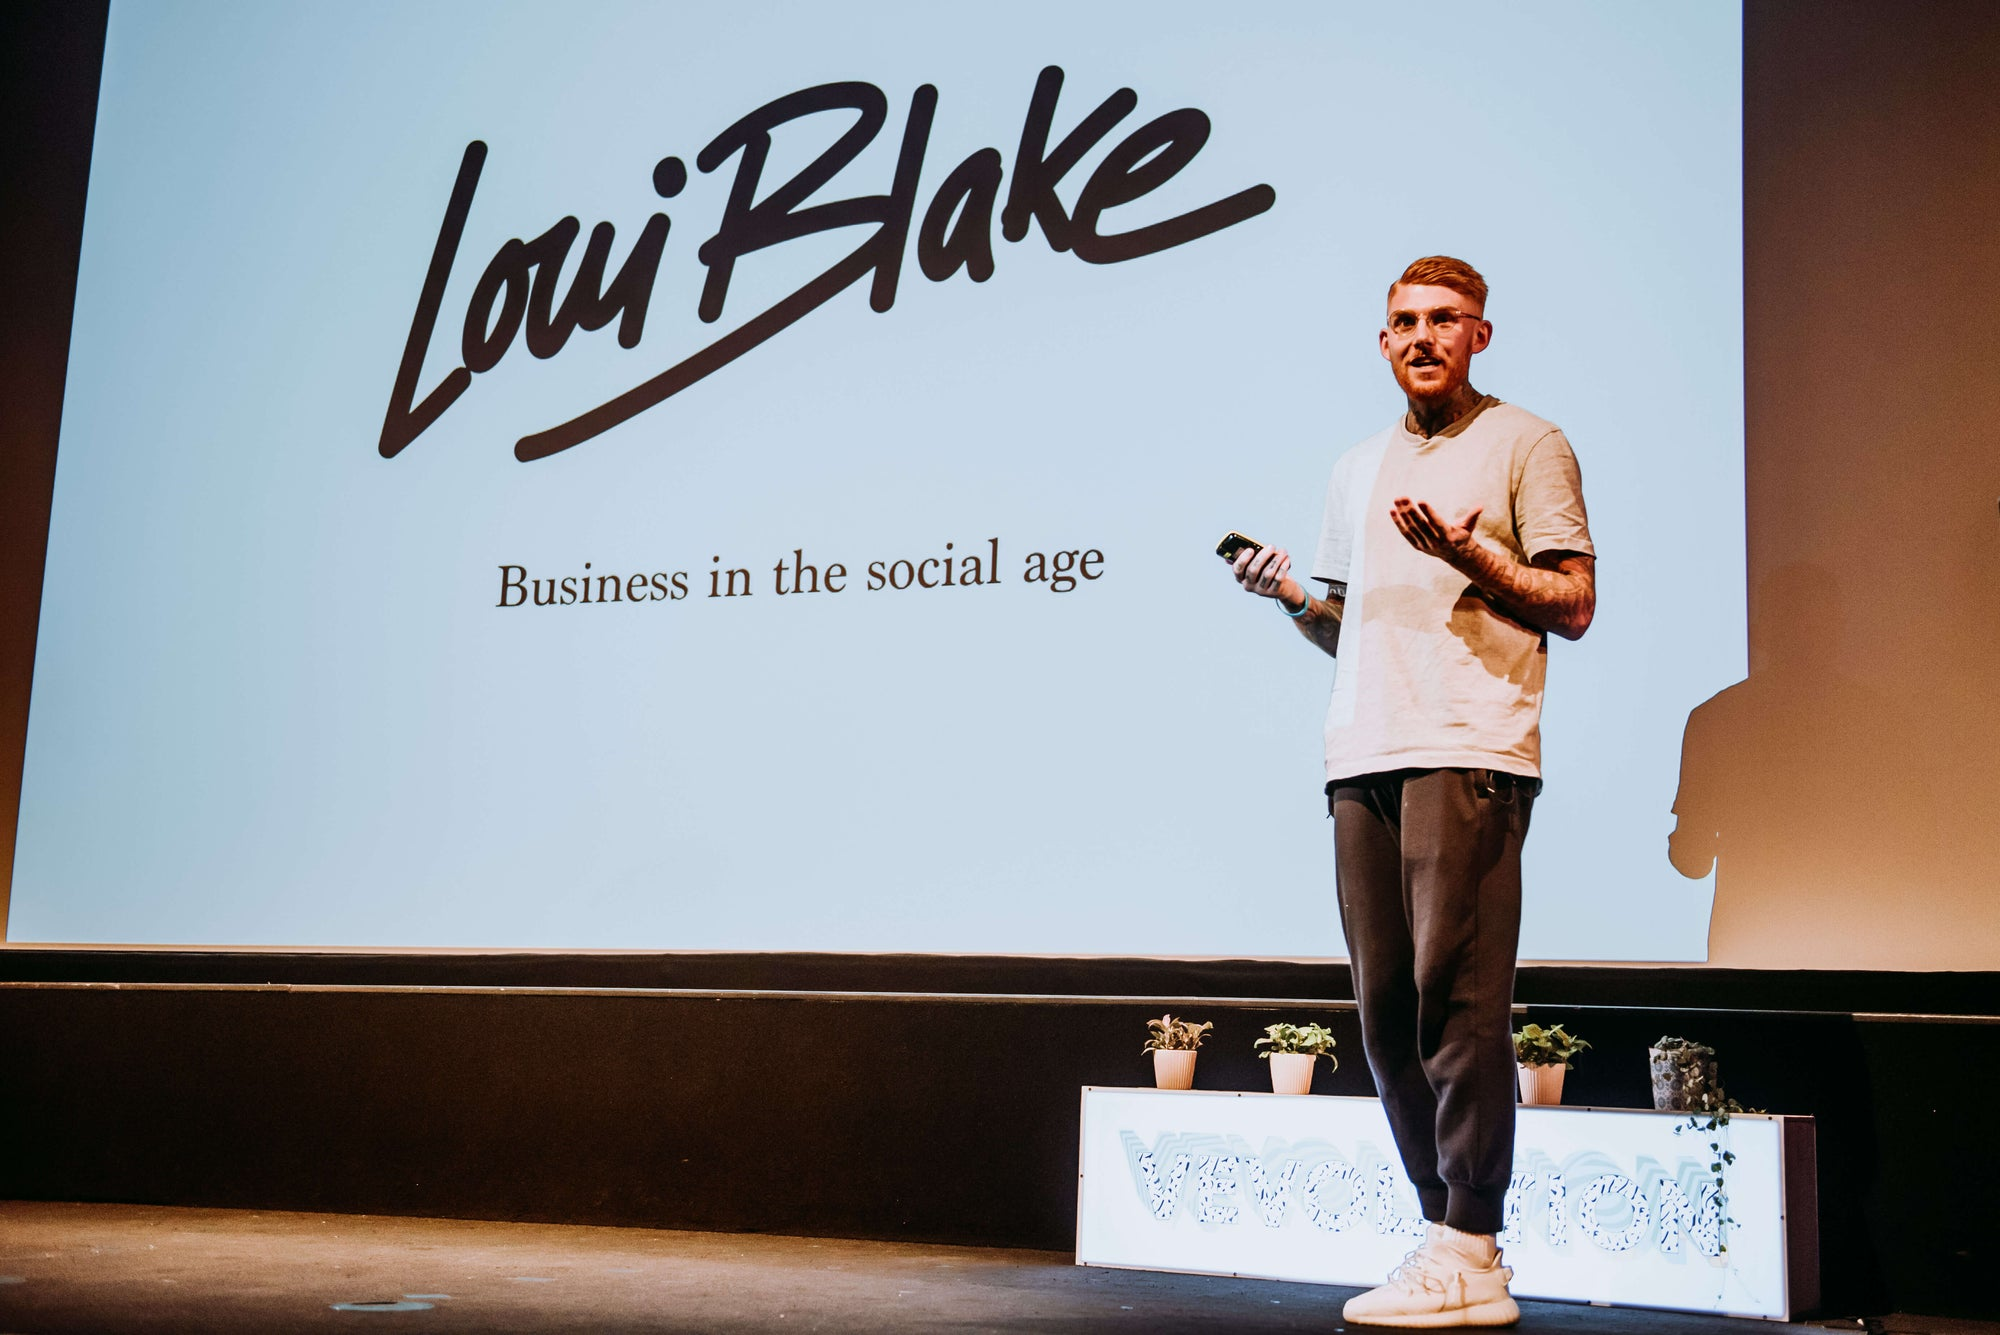 Interview with Loui Blake: Vegan Extraordinaire